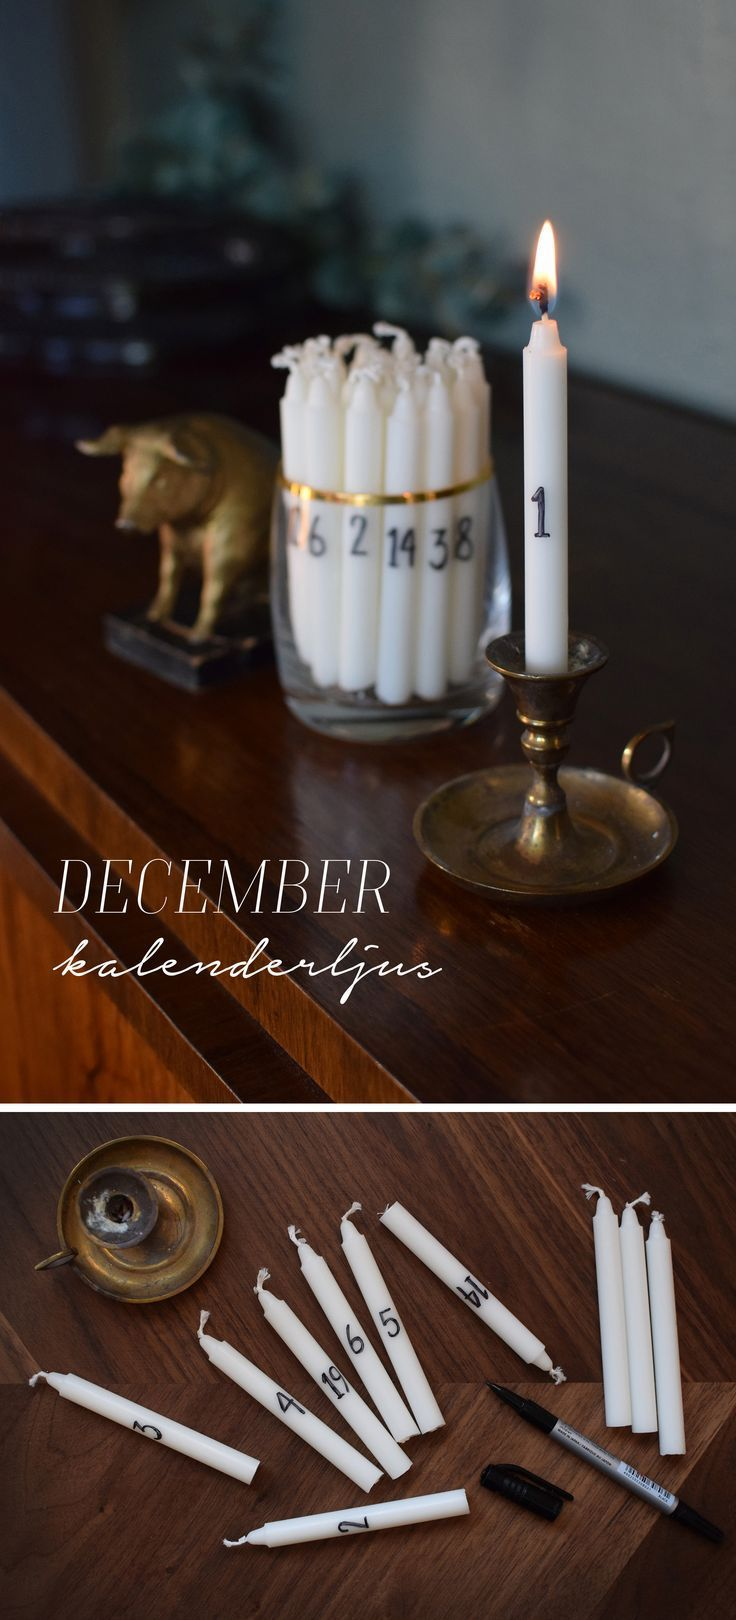 White candles with the date on it to count down to Yule